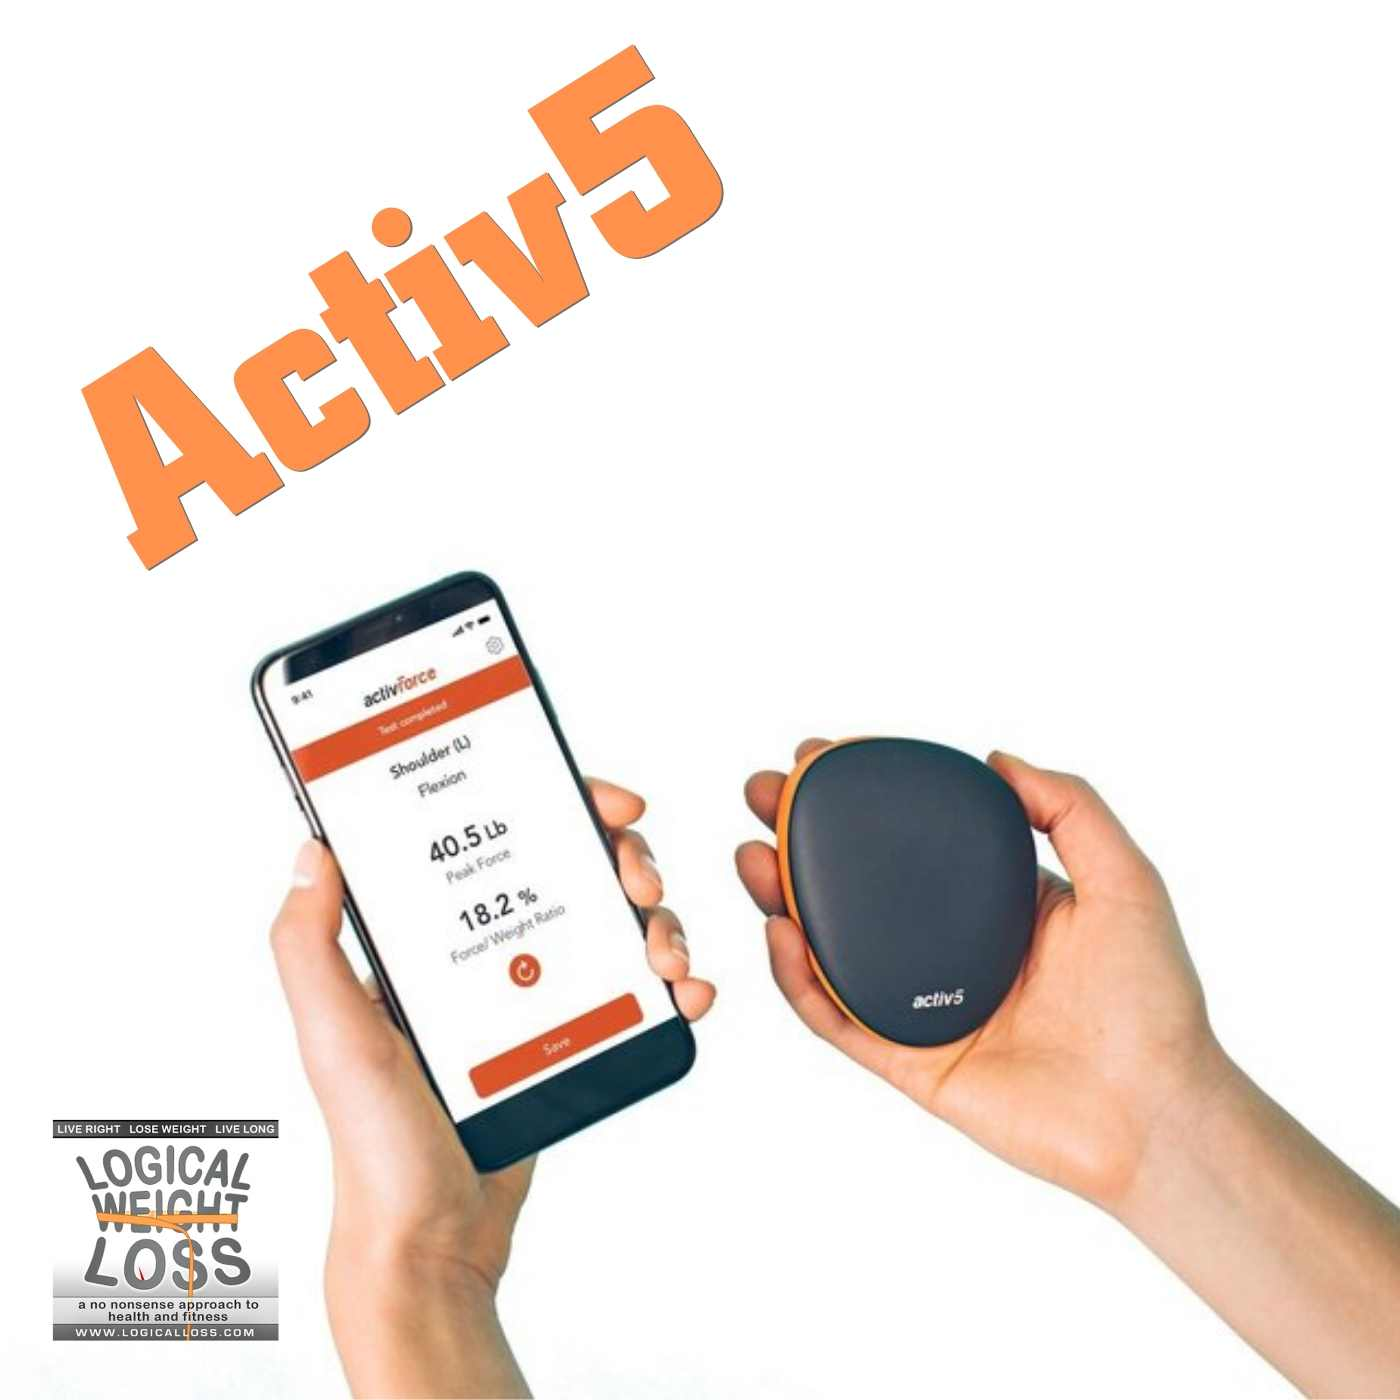 Can Squeezing a Hockey Puck Make Me Sweat? Activ5 Review